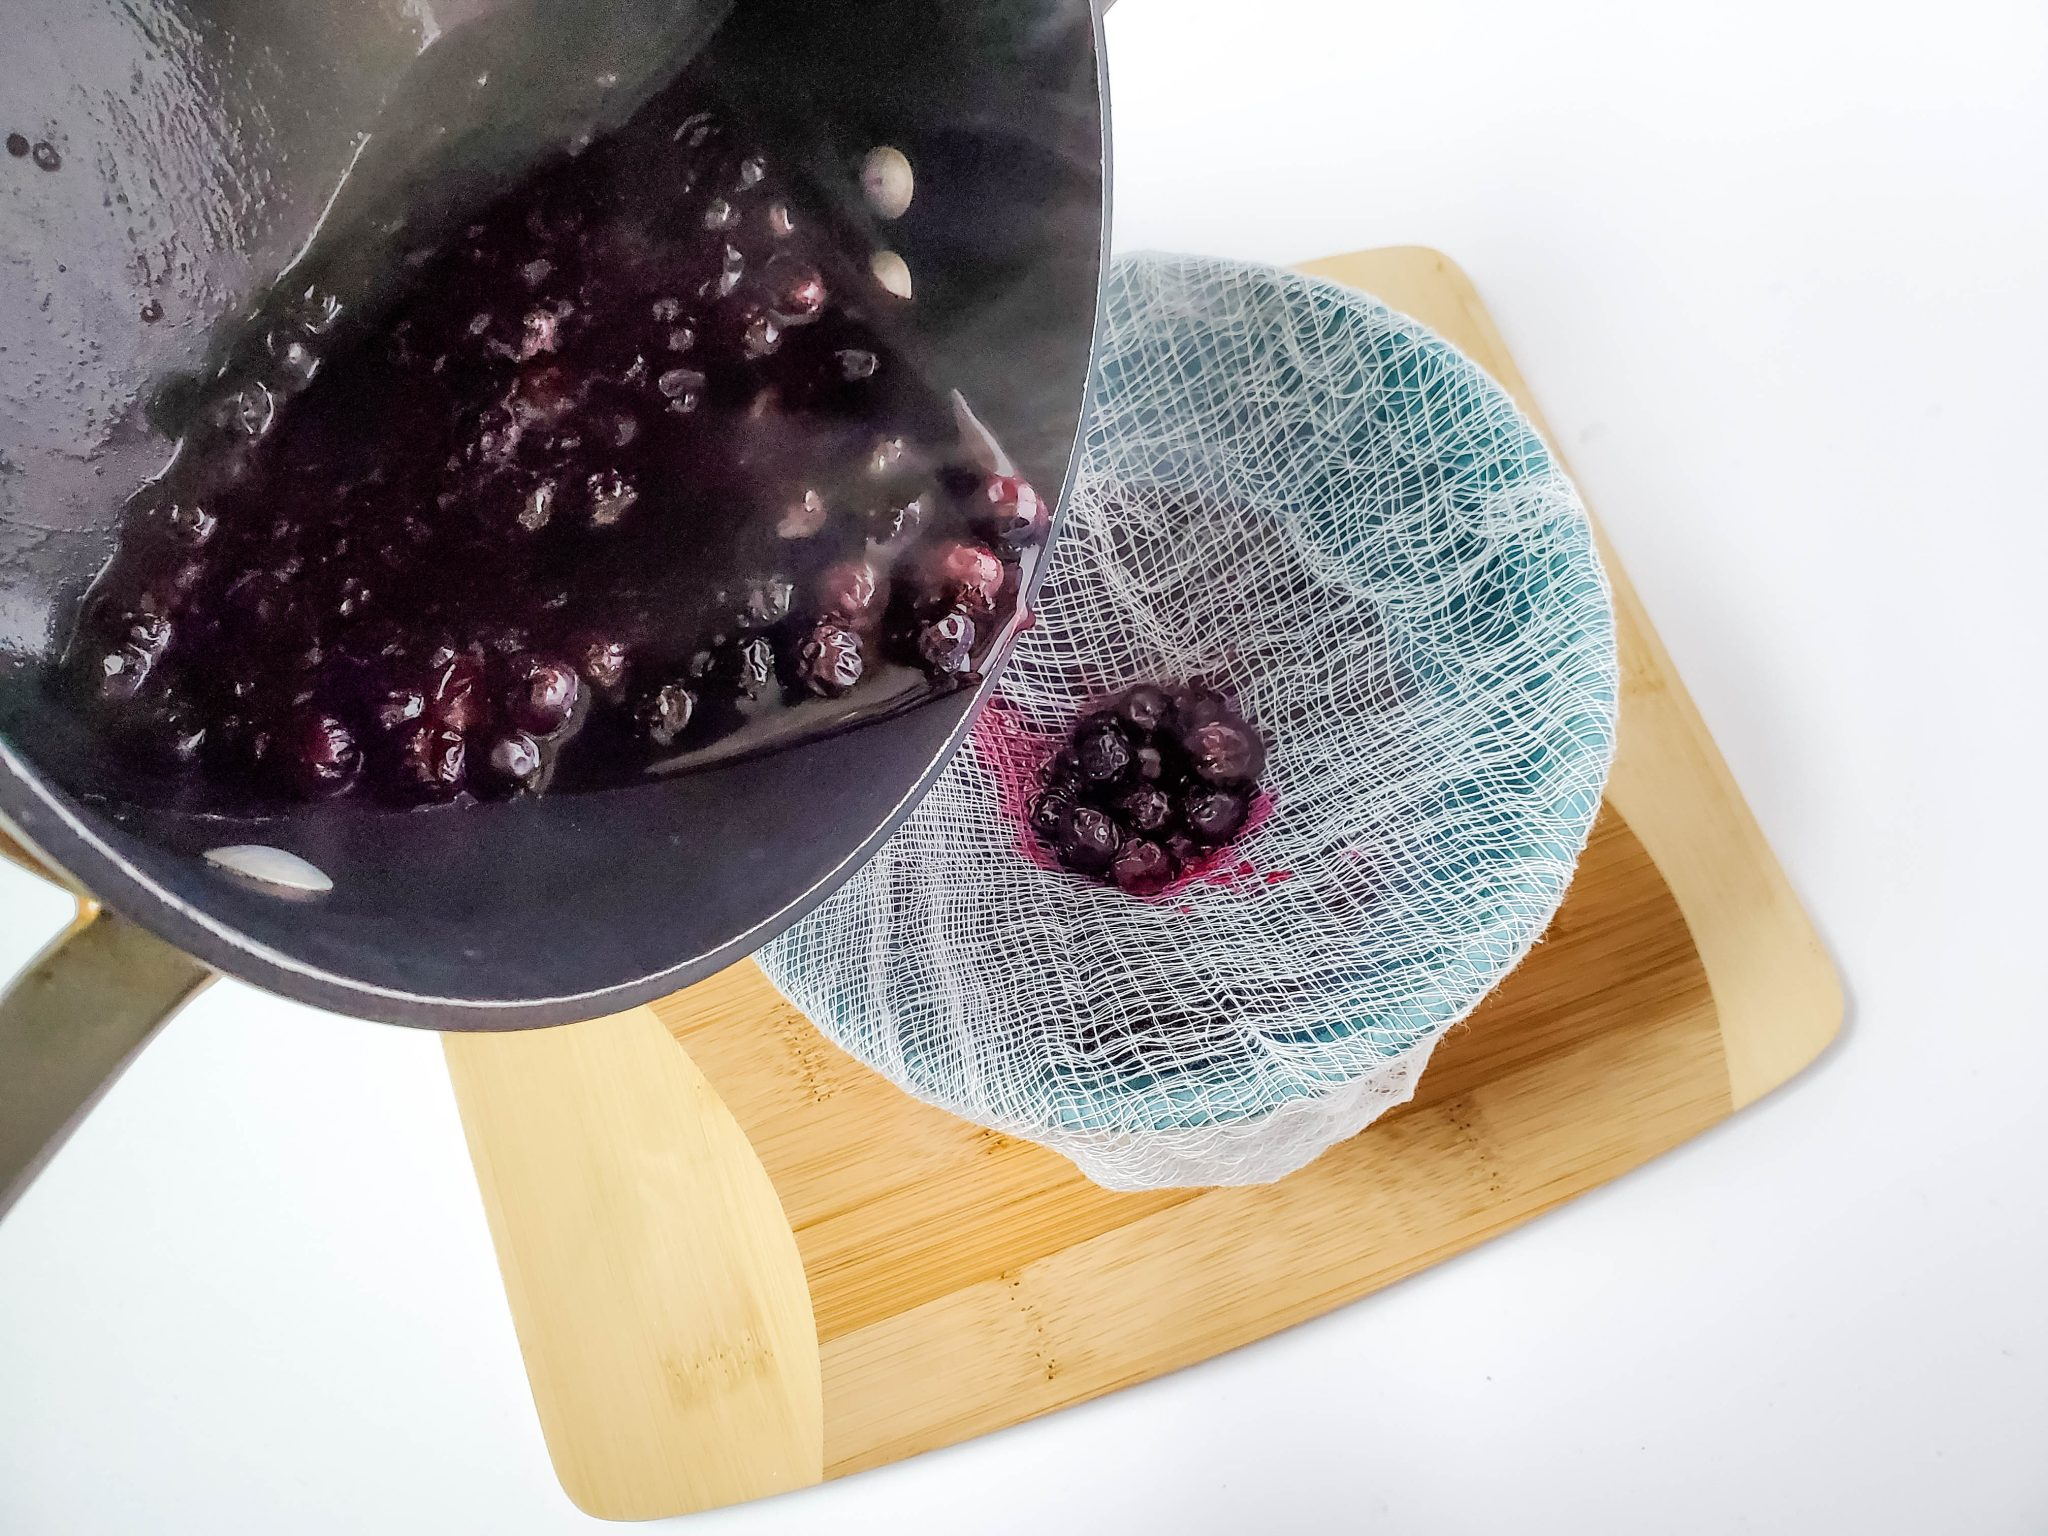 Straining blueberry juice over a bowl lined with cheesecloth